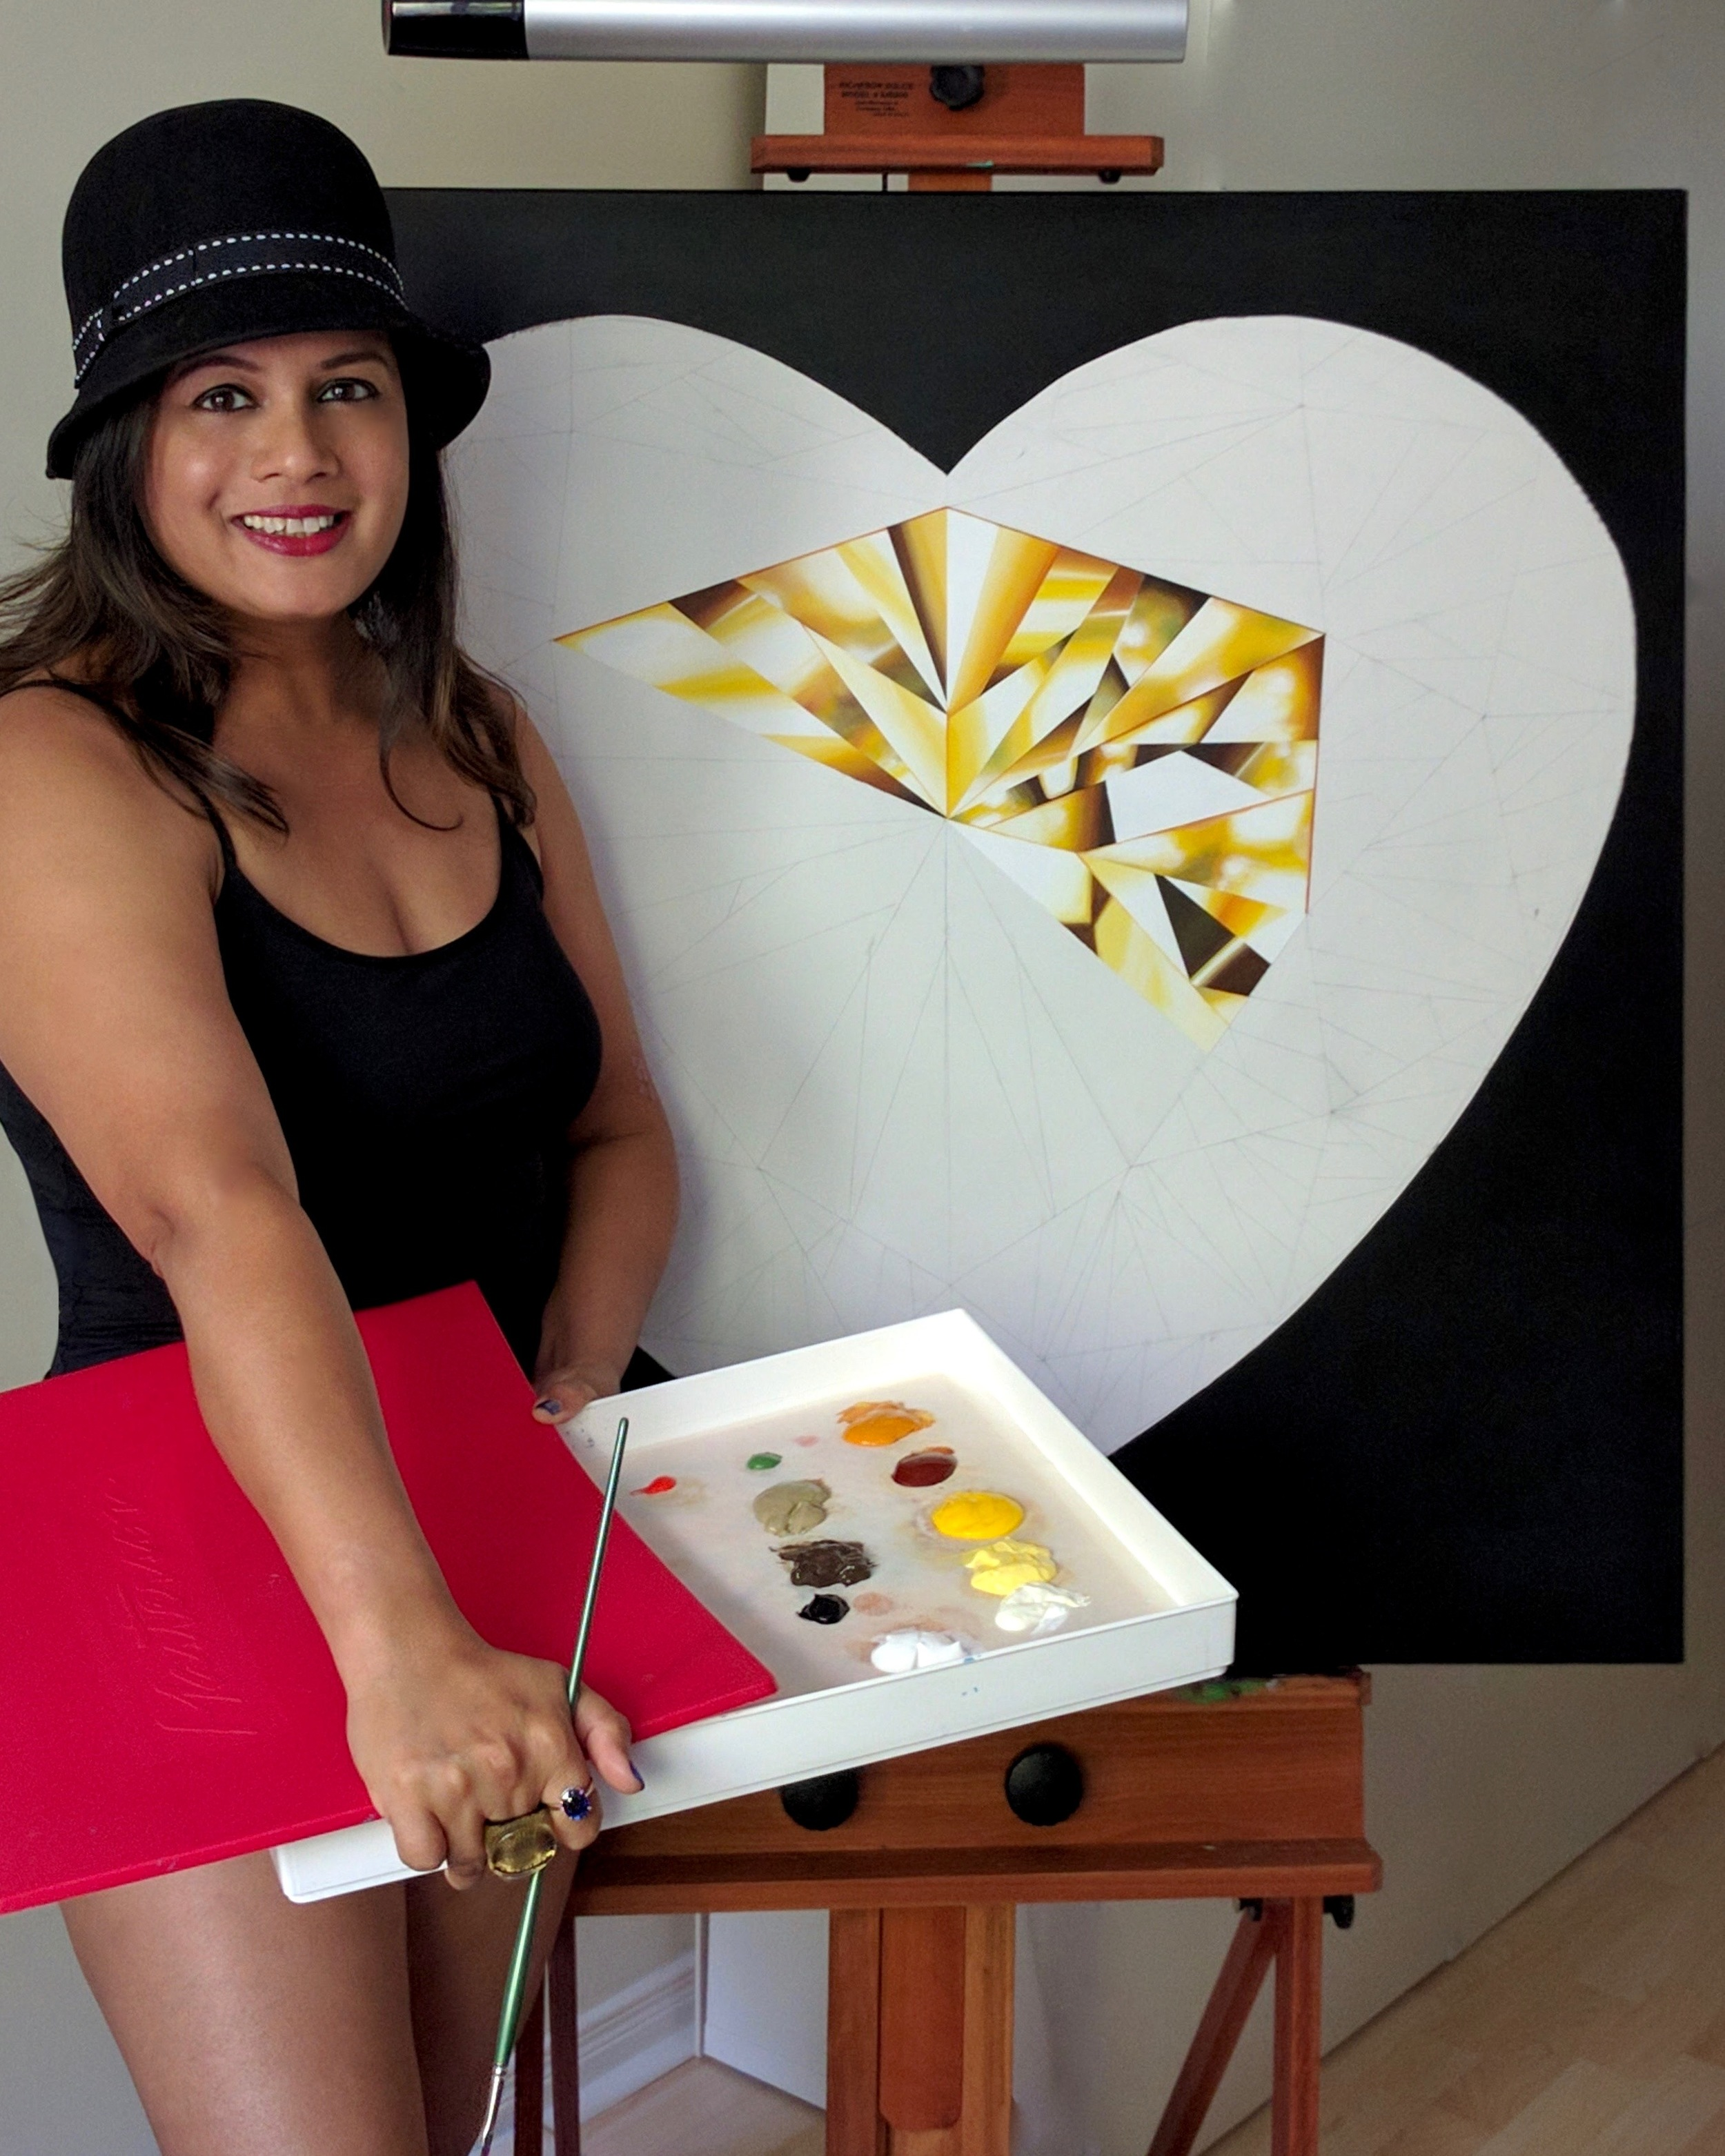 It's that heart of gold, and stardust soul that make you beautiful! Making of the 'Heart of Gold' - Portrait of a Yellow Heart-Shaped Diamond. 36 x 36 inches. Natural Diamond Dust and Acrylic on Canvas. ©Reena Ahluwalia